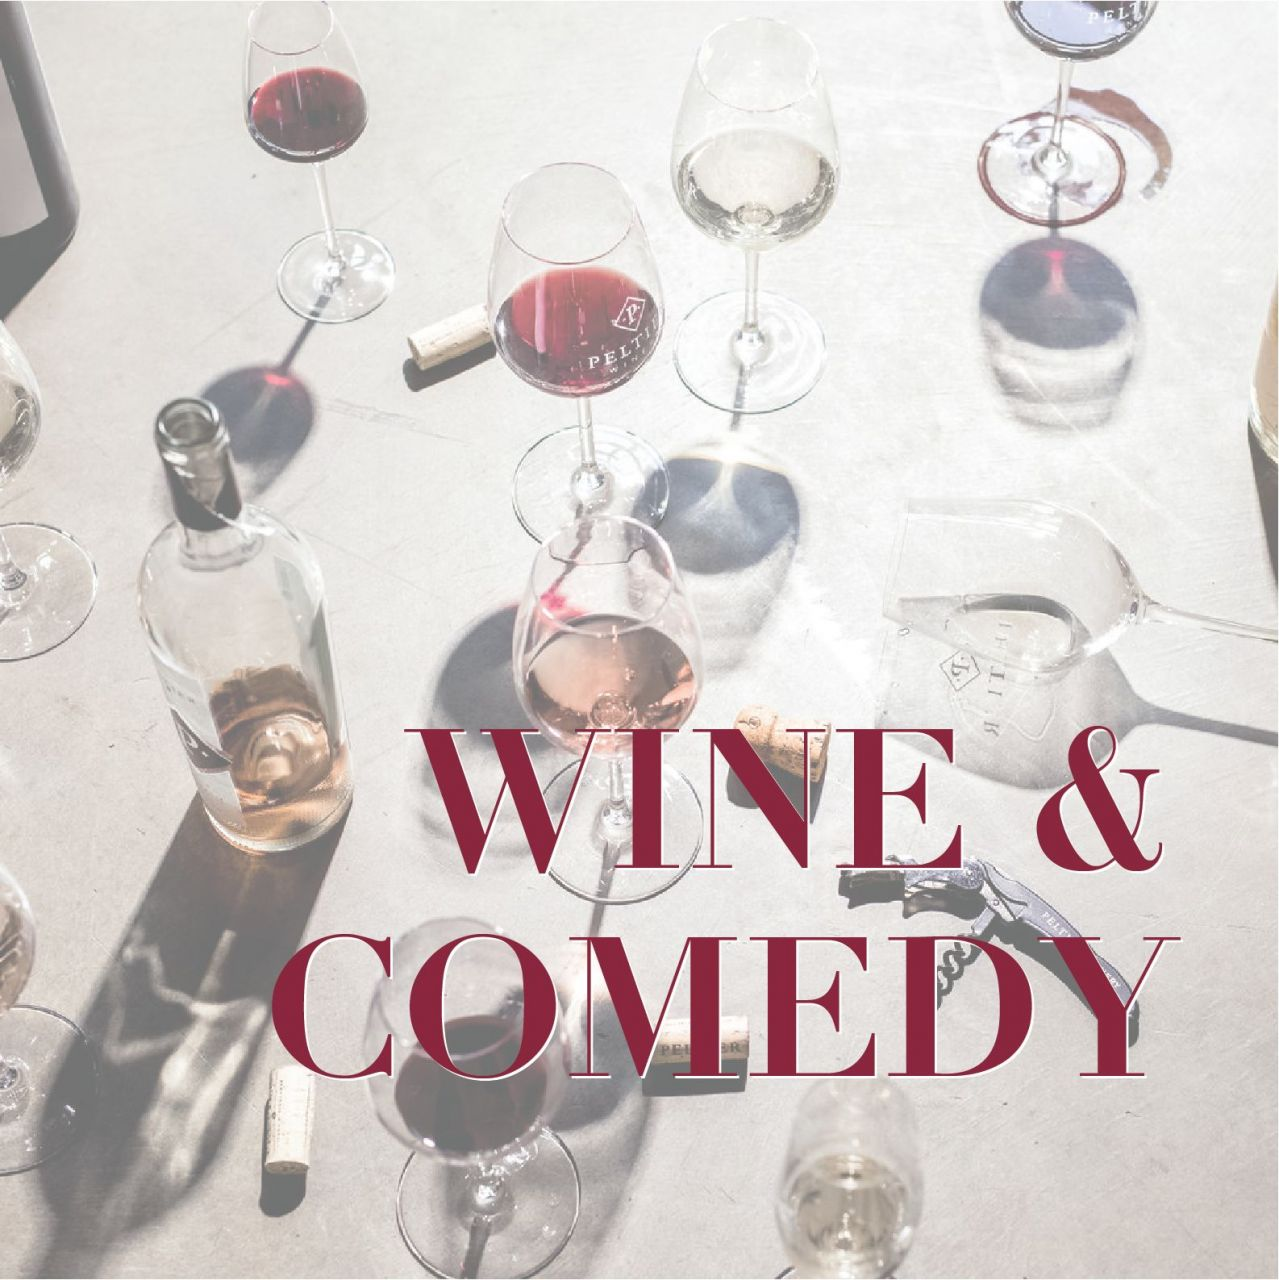 Image of wine glasses, bottles and corks strewn about a concrete floor with the works Wine and Comedy